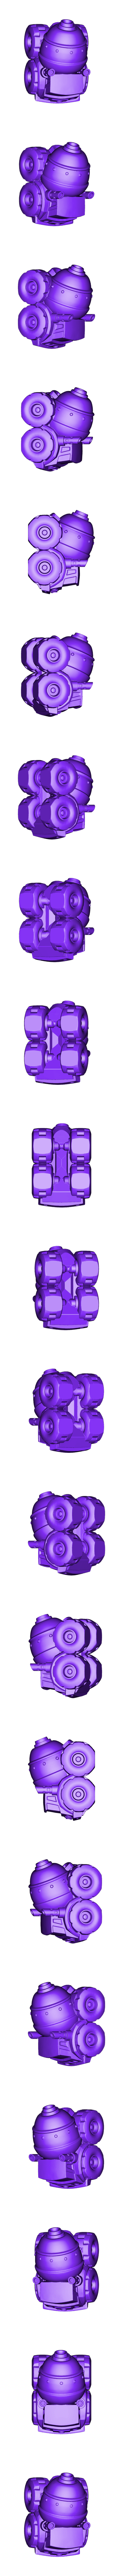 CT_MightMixer.stl Download free STL file Mighty Mixer • 3D print object, TerryCraft